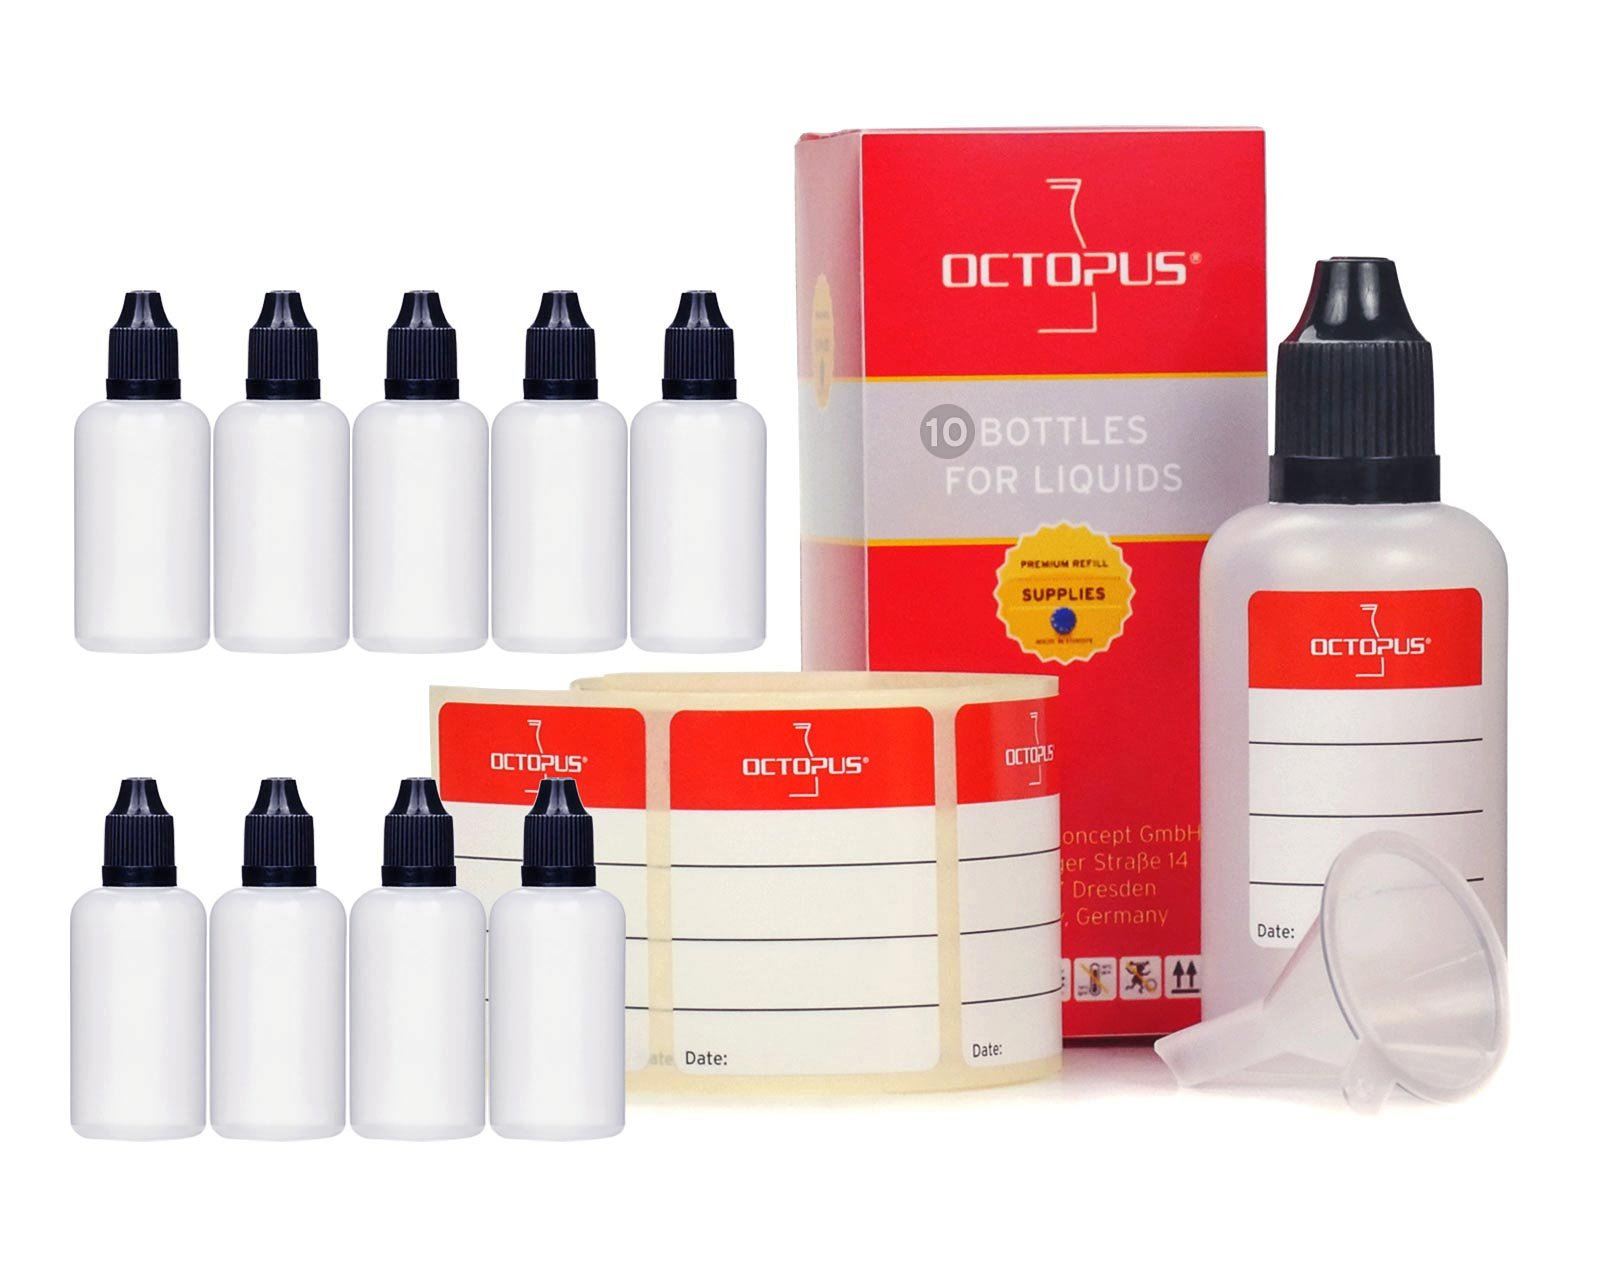 10 x 50 ml liquid bottles with funnels + labels: for e-liquids, e-cigarettes, plastic bottles made of PE LDPE, dosing bottles, dropping bottles or squeeze bottles + white lids with child safety lock 1